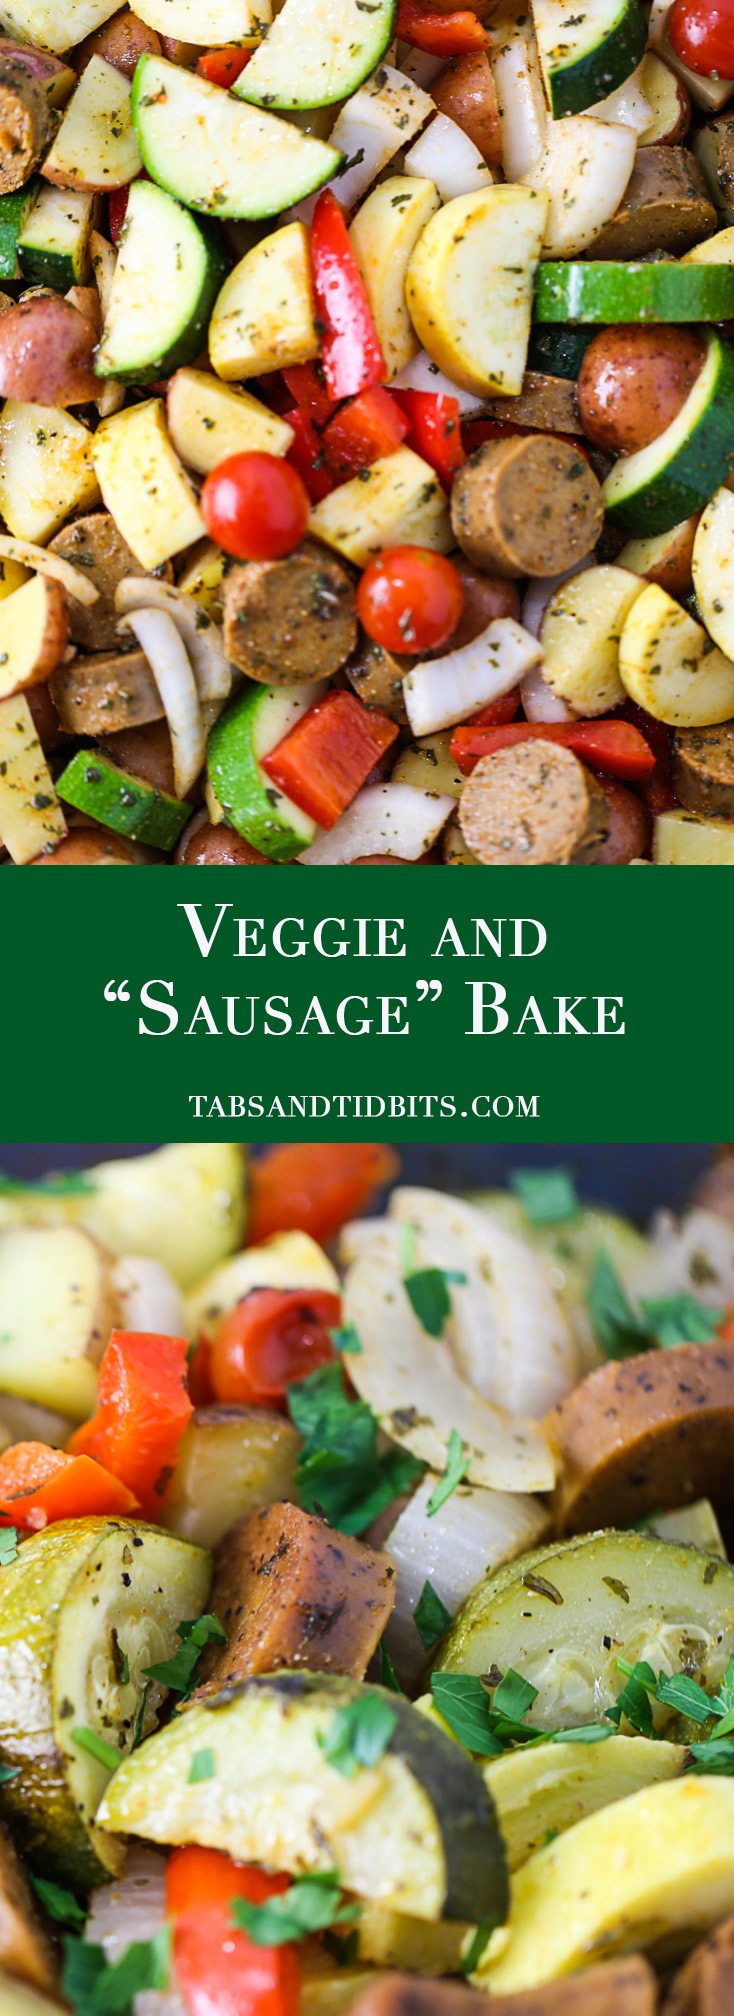 Veggie and Sausage Bake - A one dish flavorful meal full of vegetables and your favorite veggie sausage!